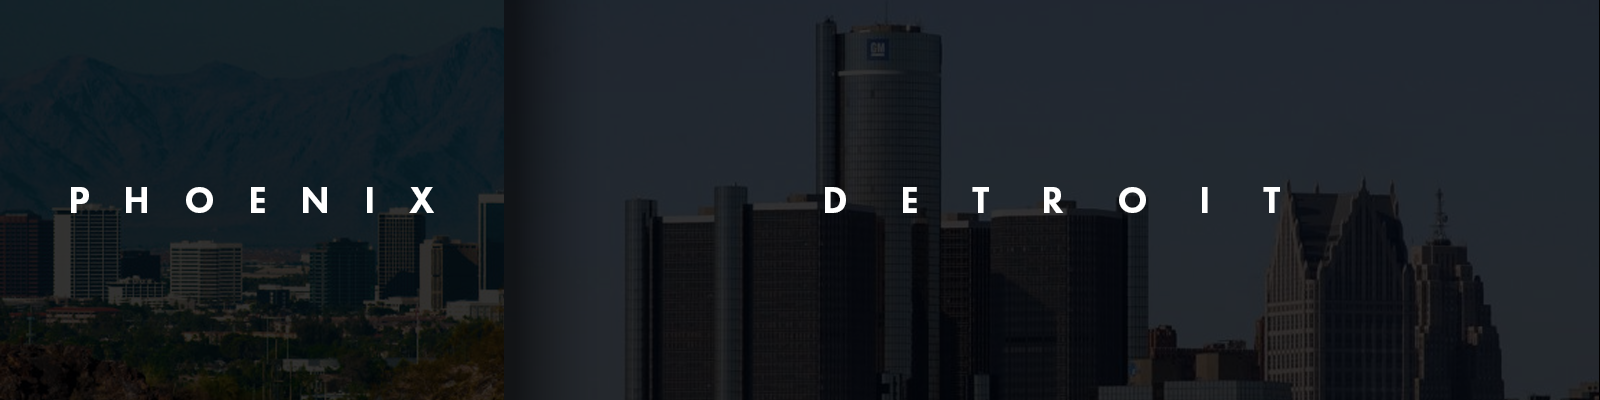 detroit app developers